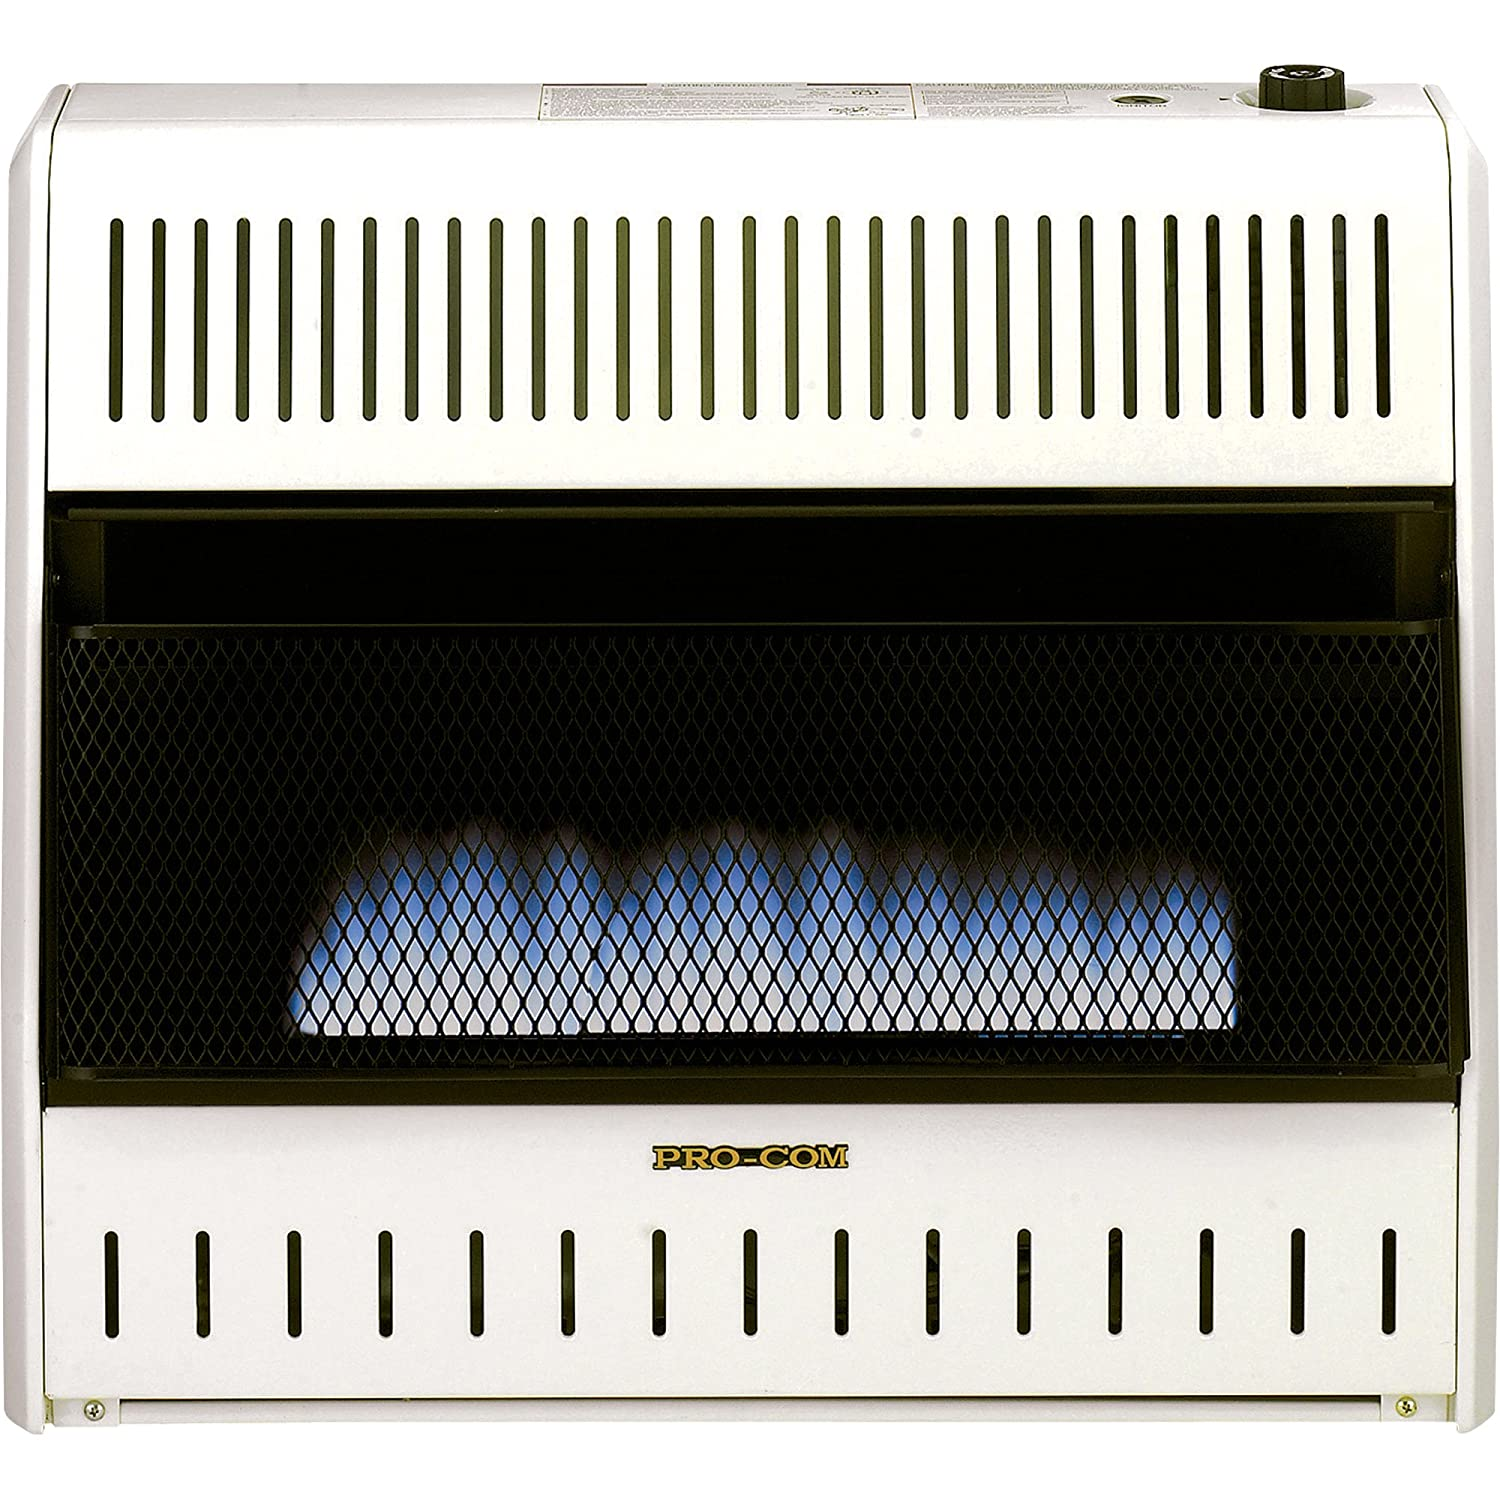 Amazoncom Procom Blue Flame Vent Free Wall Heater 30000 Btu . Ventless Gas  Fireplace Reviews ... - Fireplace Inserts Hearth And Fireplaces On Pinterest Ventless Gas